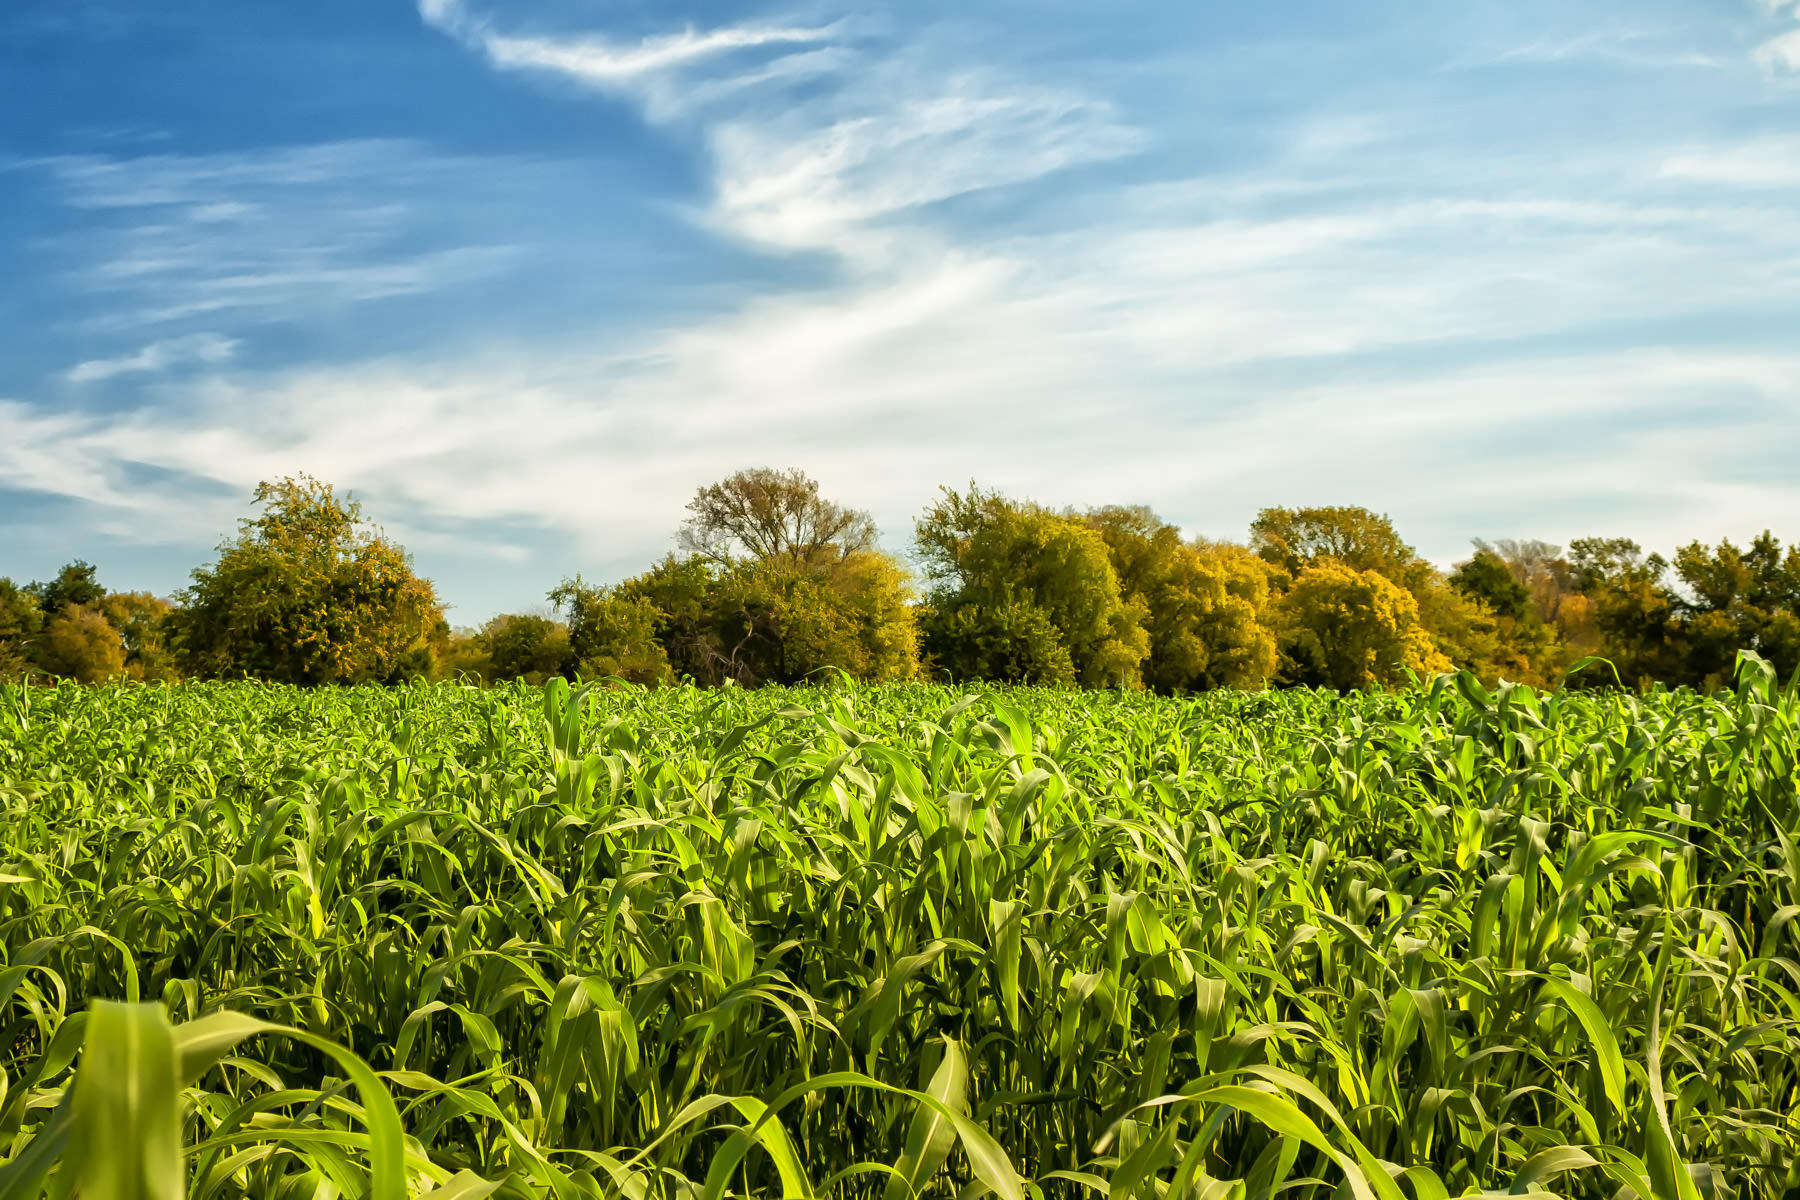 A cornfield at Moore Farms, Bullard, Texas.